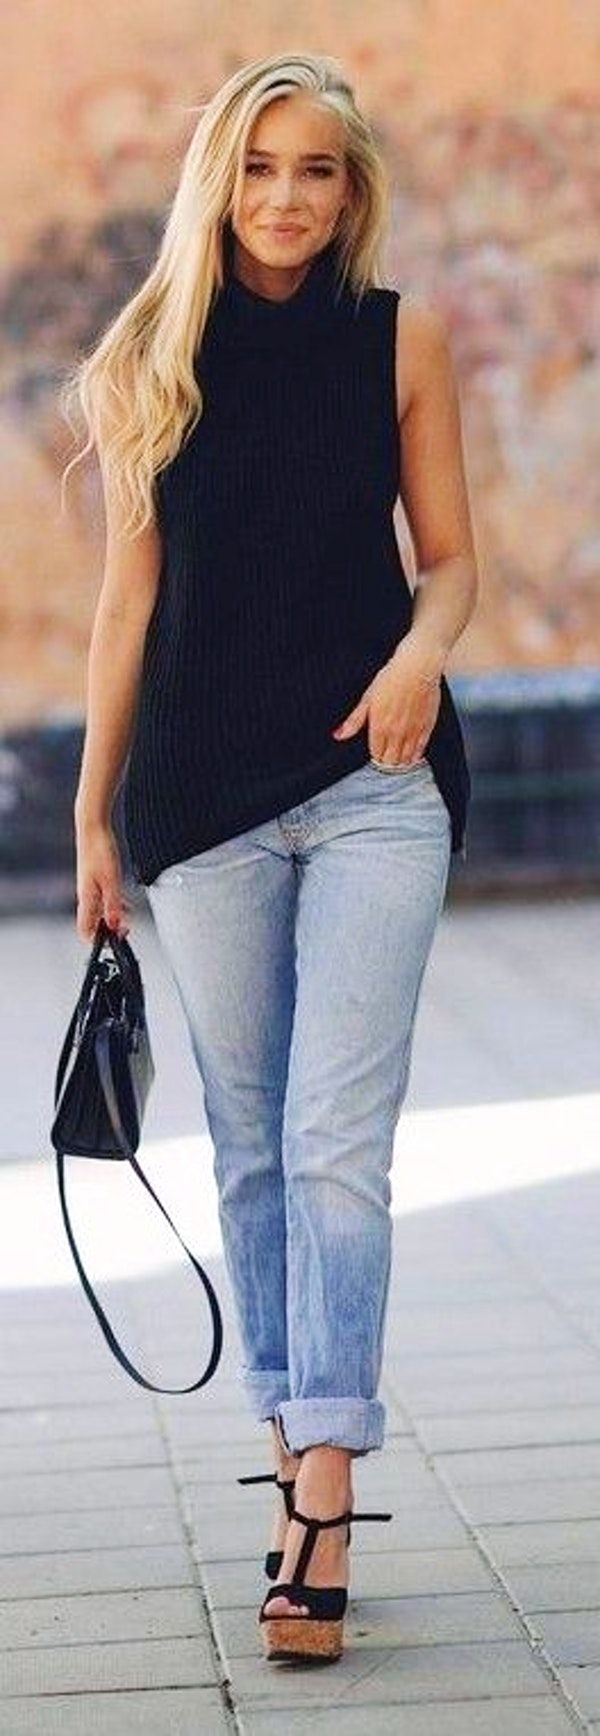 #spring #summer #fashionistas #outfitideas | Black Sleeveless Sweater + Mom's Jeans